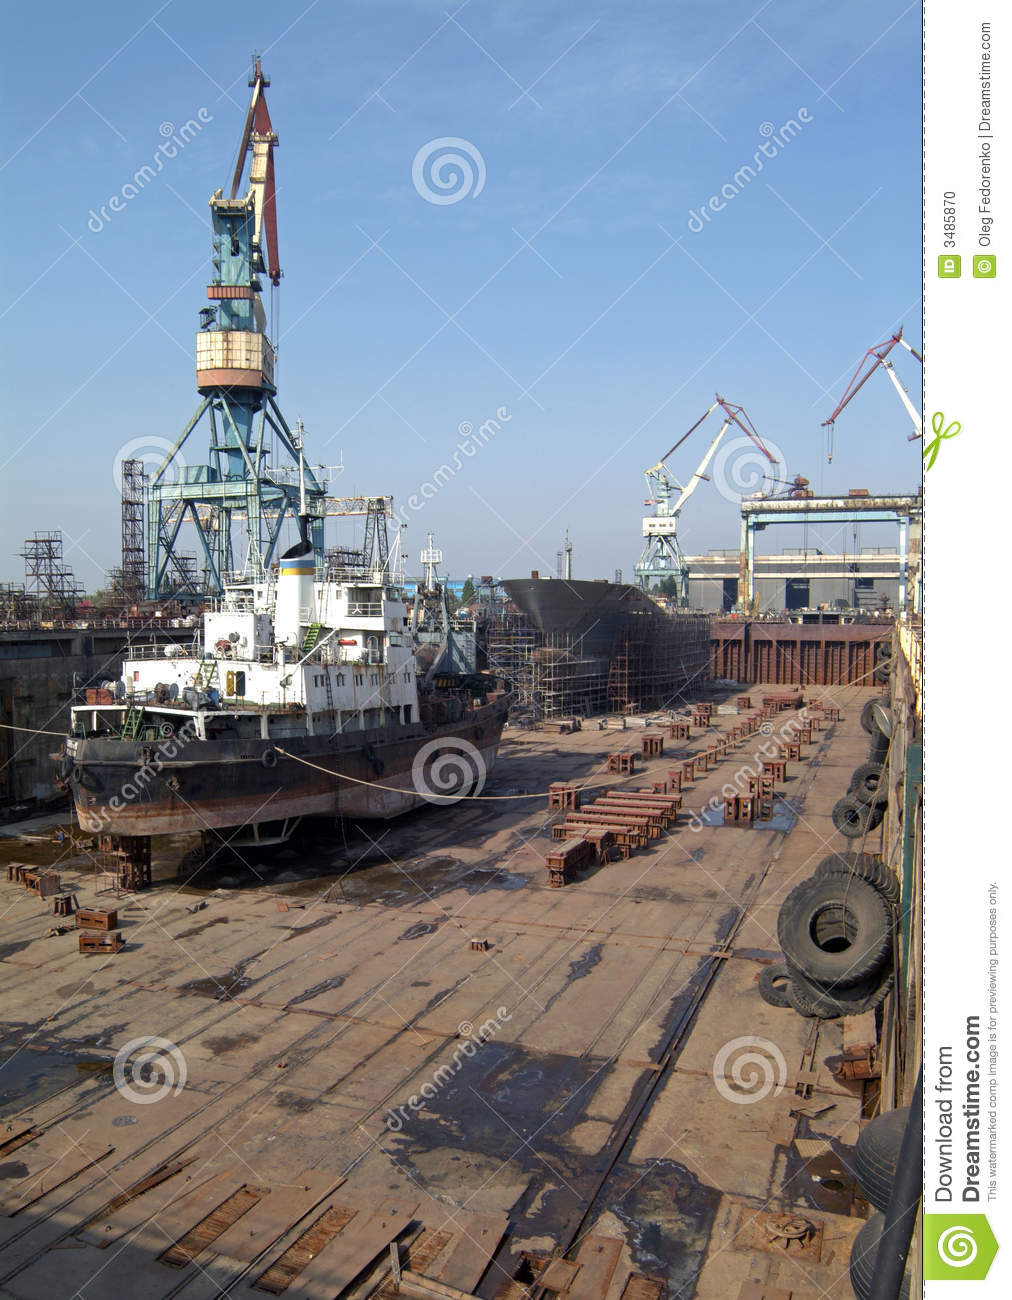 Shipbuilding  Dok  Main Sector Building The Multi Purpose Dry Cargo